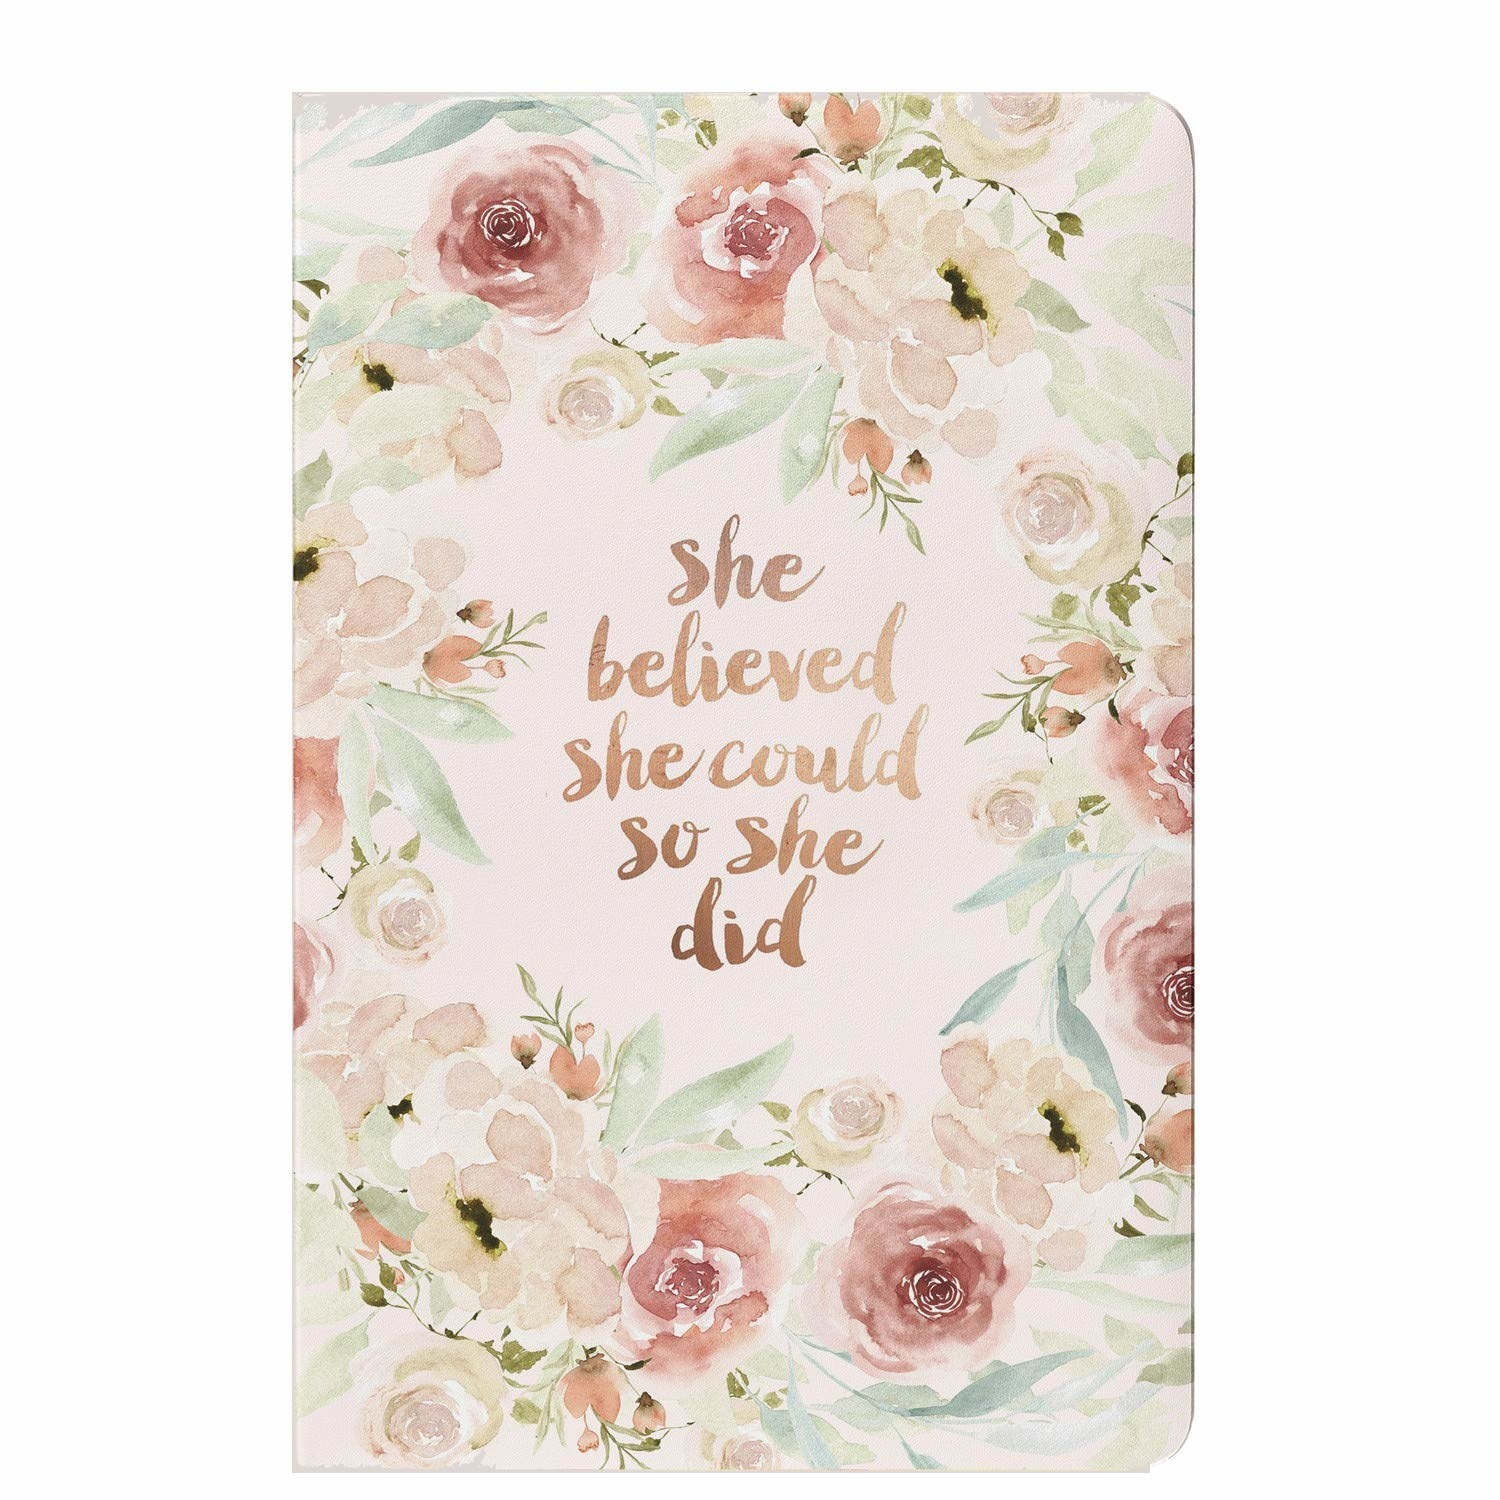 """A notebook cover with roses on it and a text that says """"She believed she could so she did"""""""